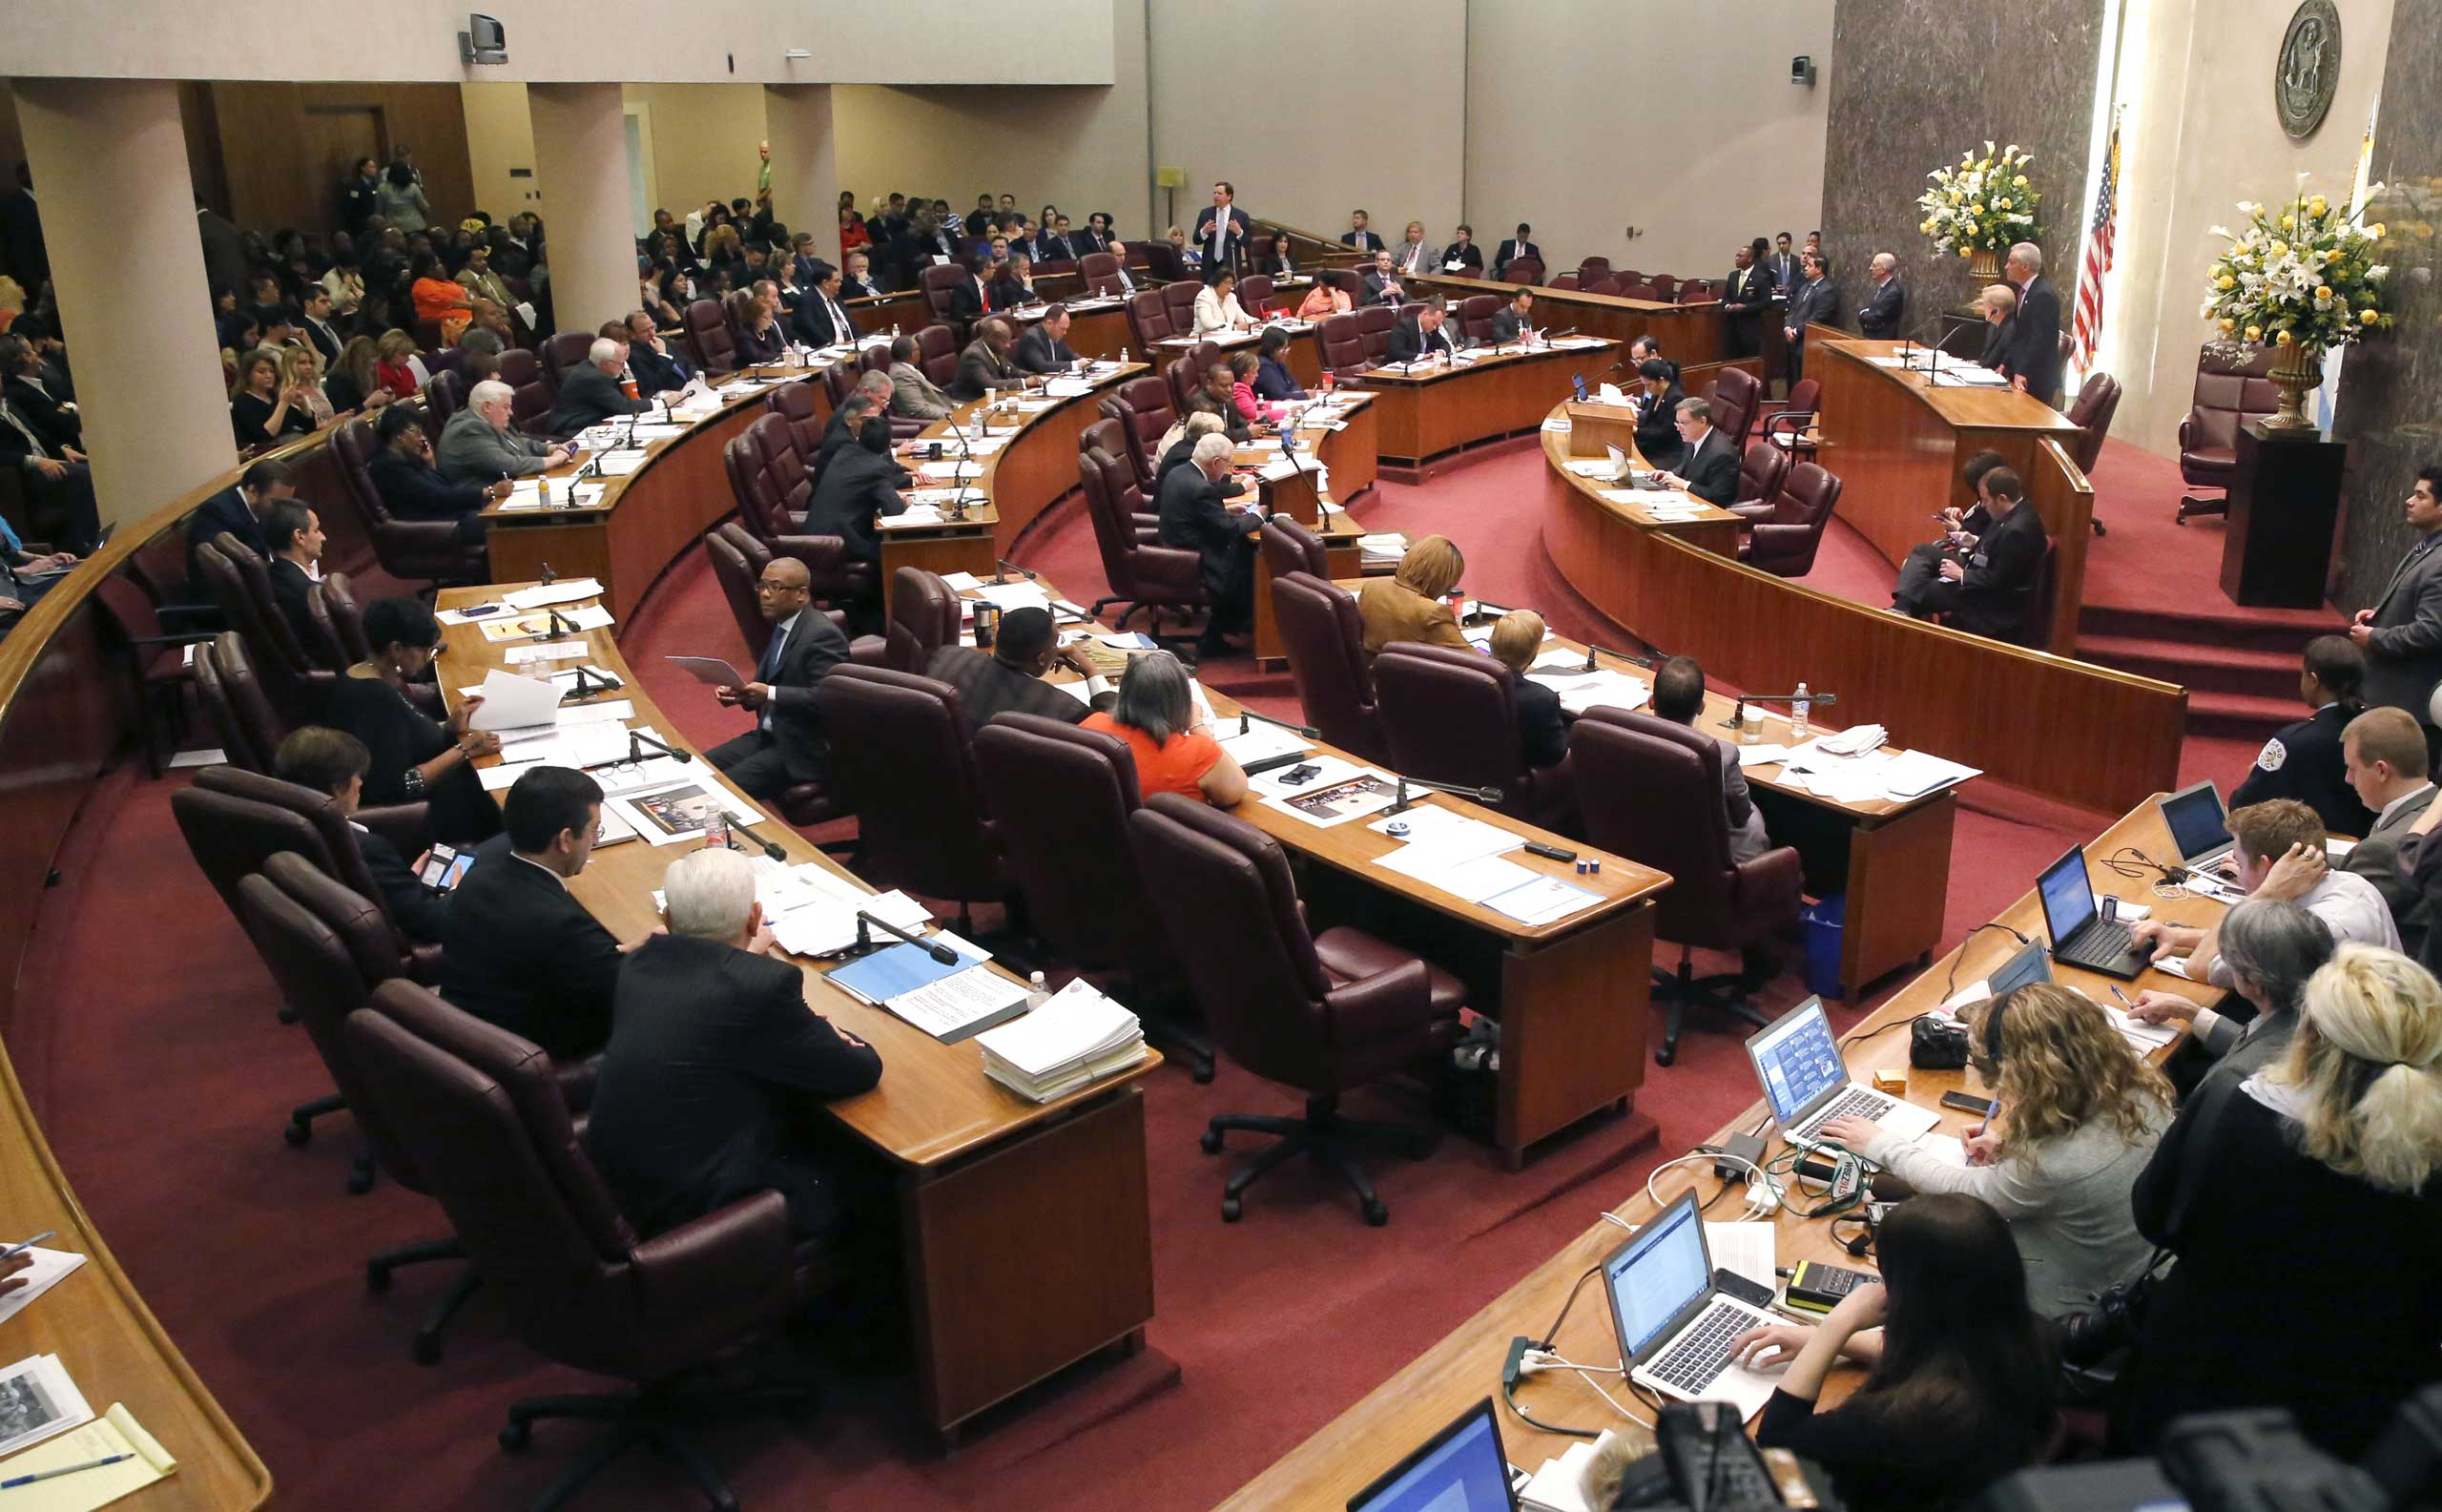 The Chicago City Council votes on a $5.5 million fund to compensate victims of police torture, in Chicago, on May 6, 2015.